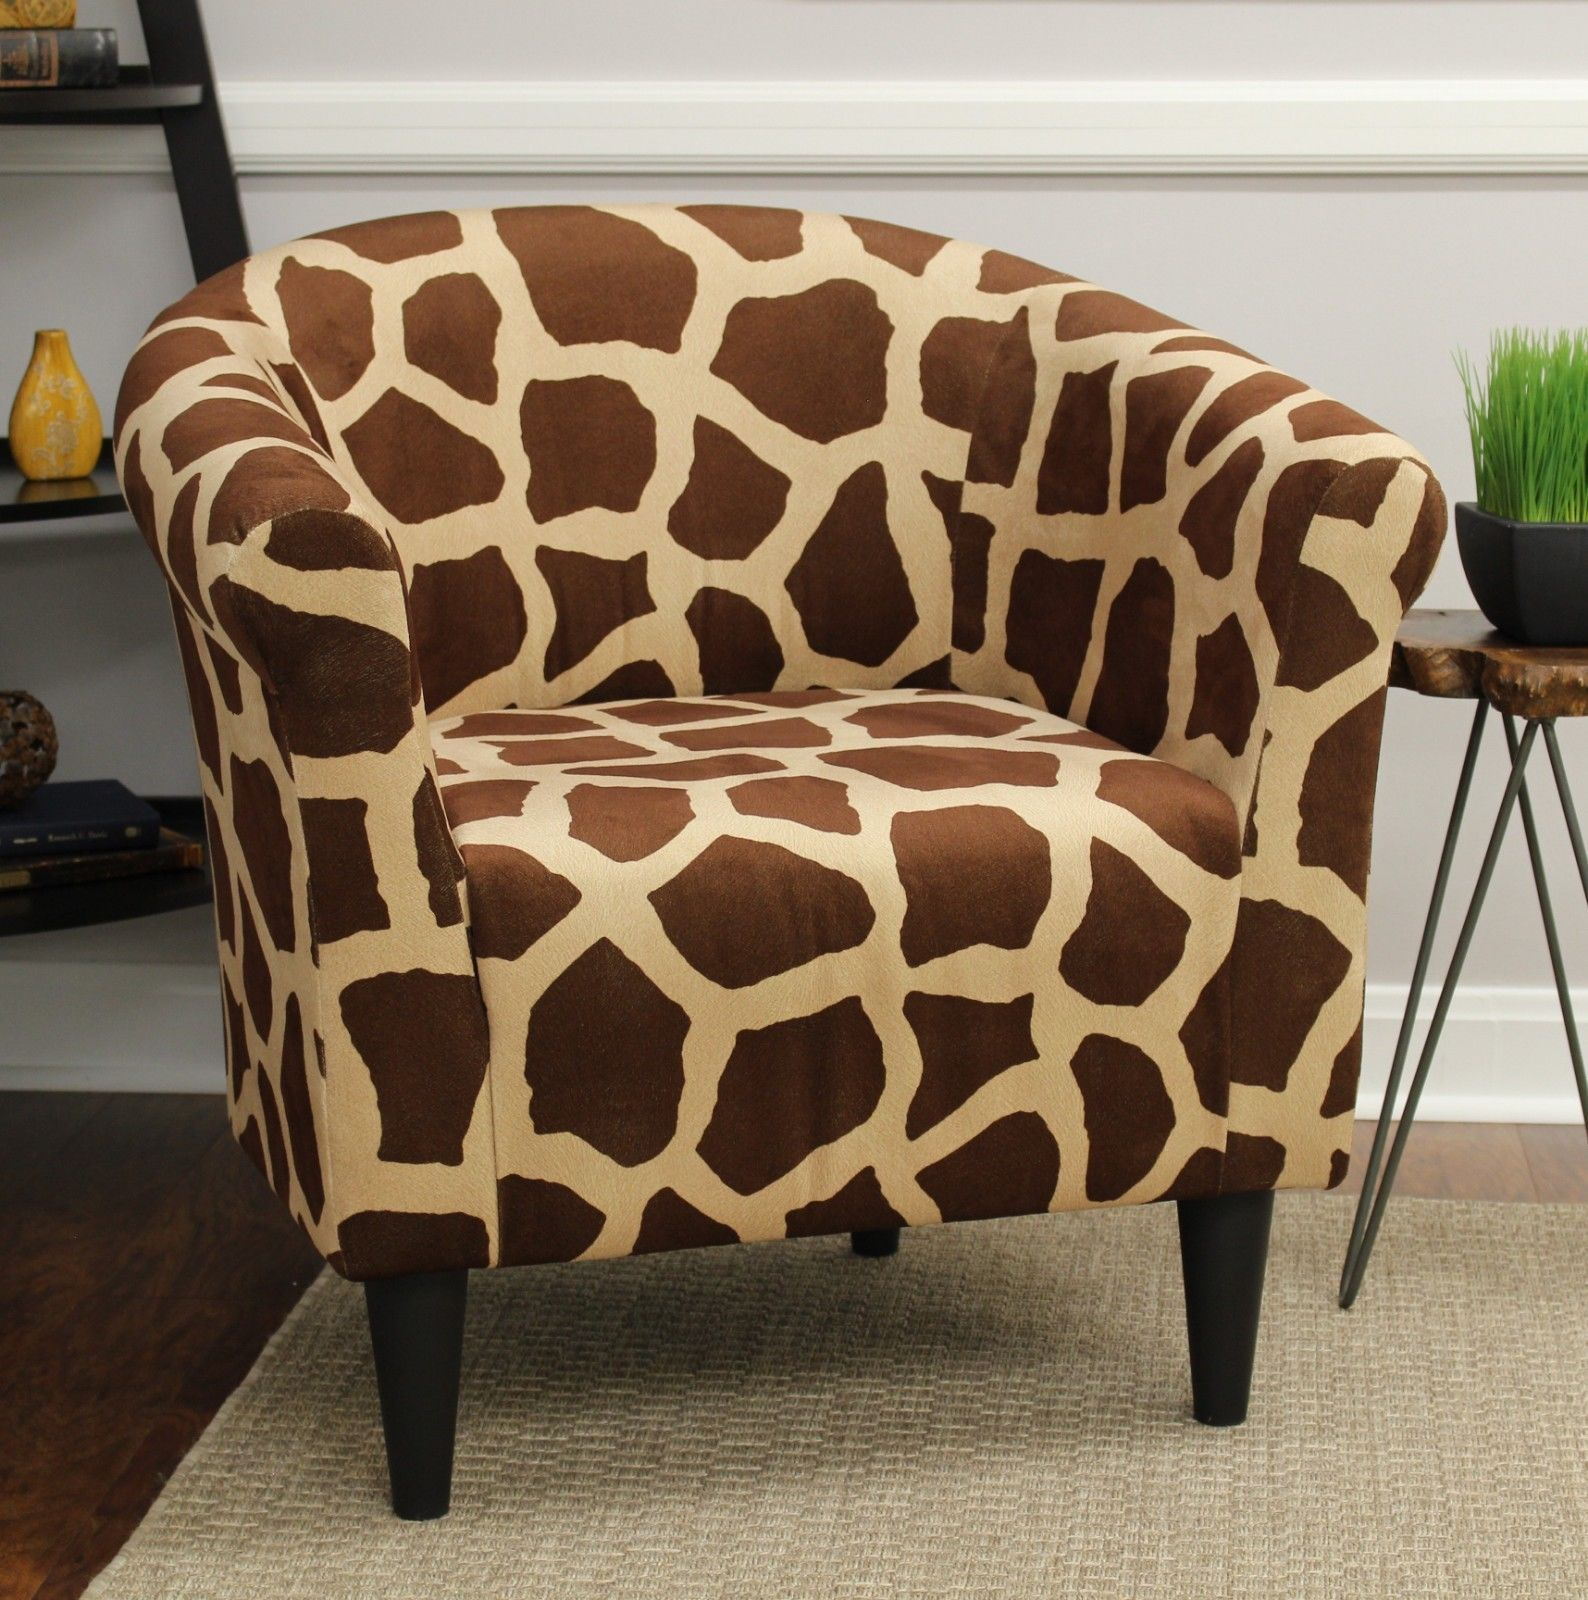 Lightweight Classic Animal Printed Fabric Bucket Accent Chair Deep Padded Seat Chair Bedroom Accent Chairs For Living Room Upholstered Chairs Accent Chairs